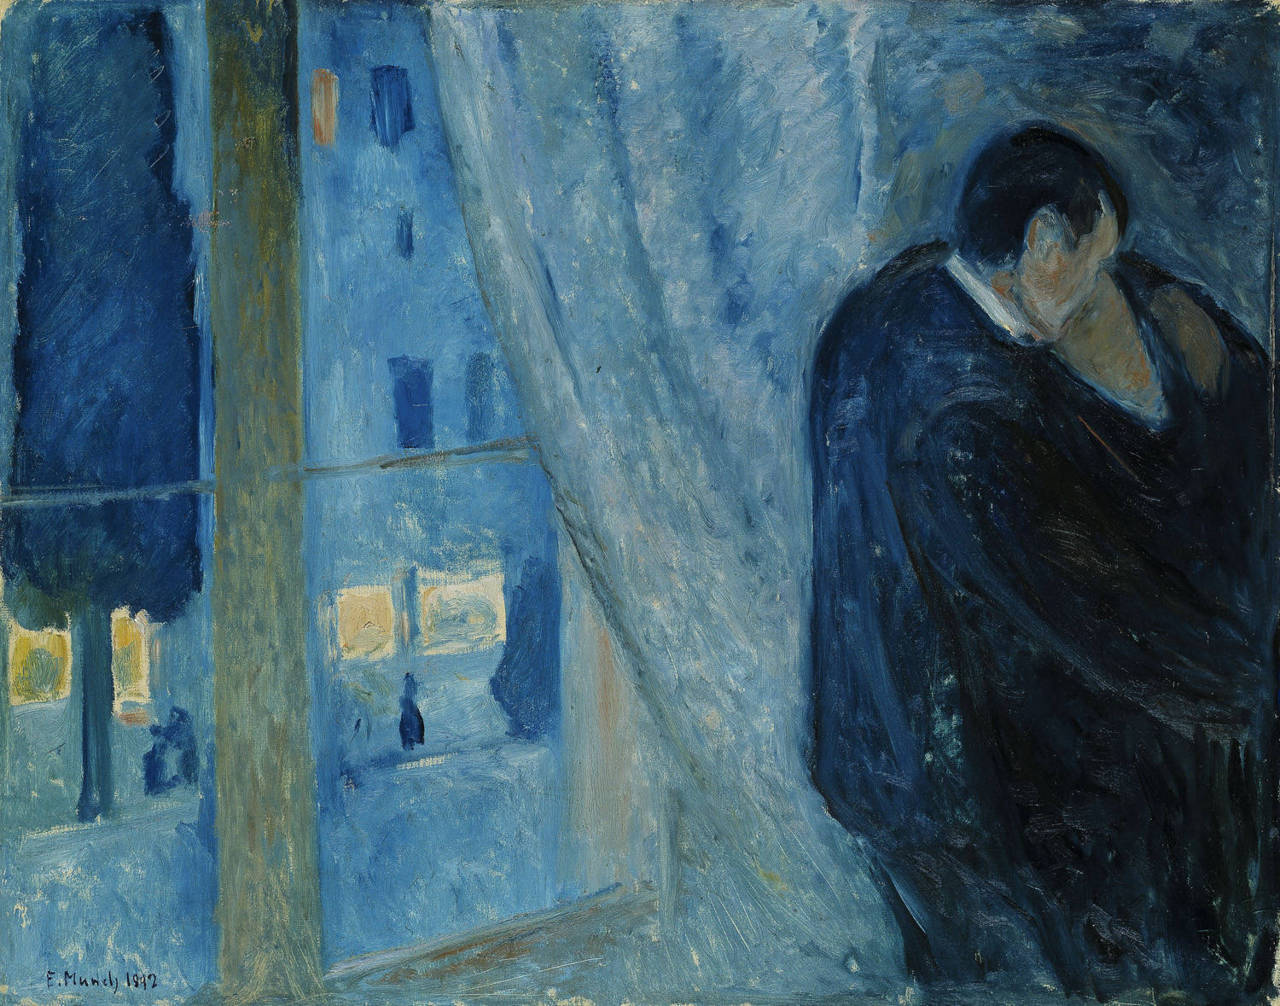 Edvard Munch - Kiss by the Window, 1892. Oil on canvas